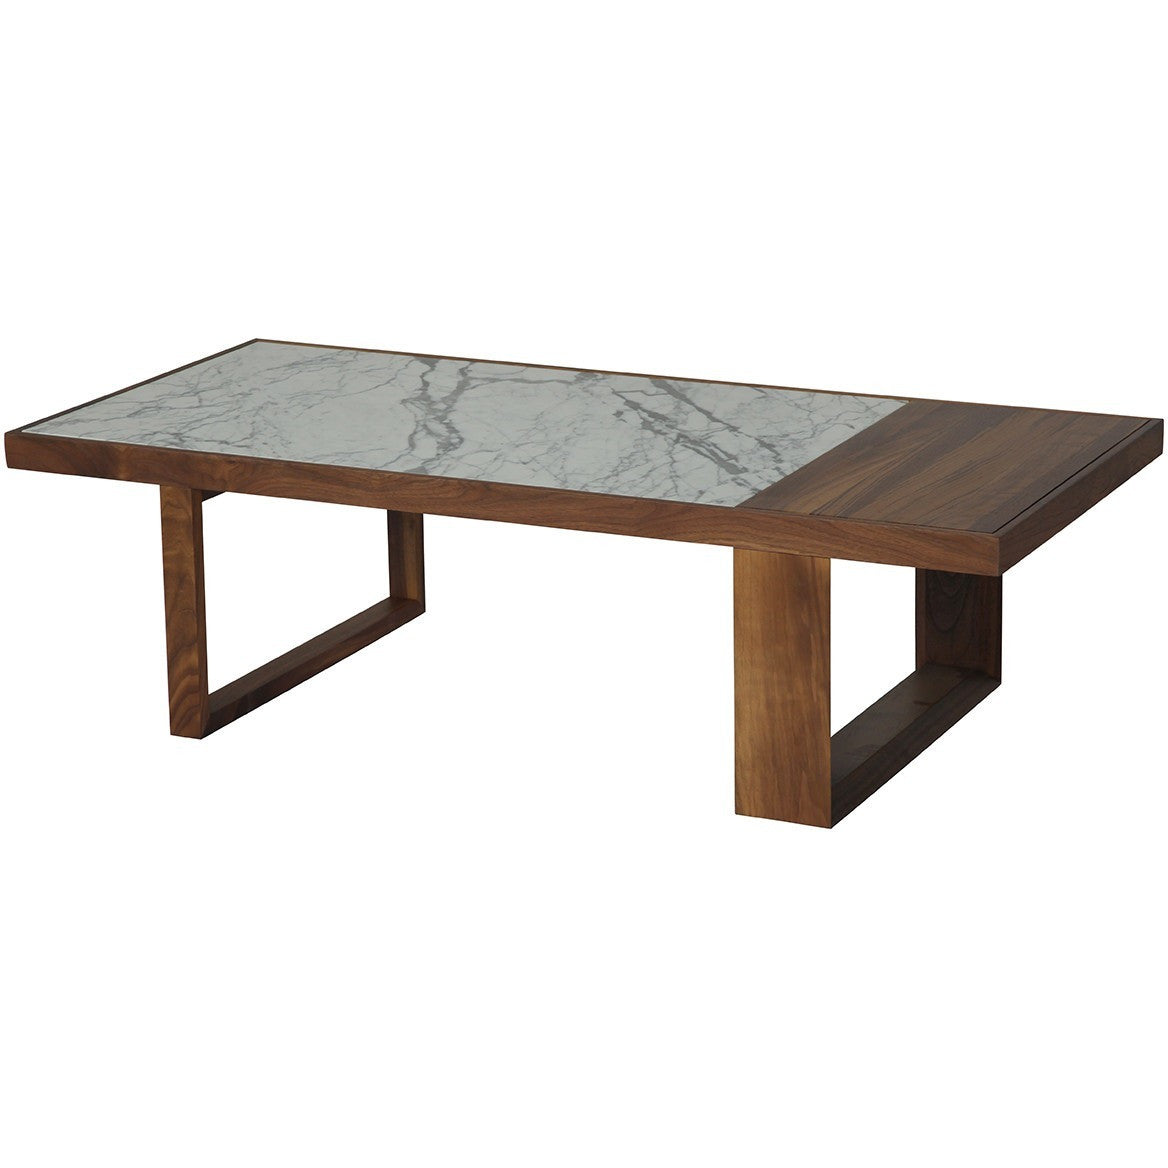 Astor Coffee Table Walnut Marble P By Ion Design Luxe Wood - Walnut and marble coffee table